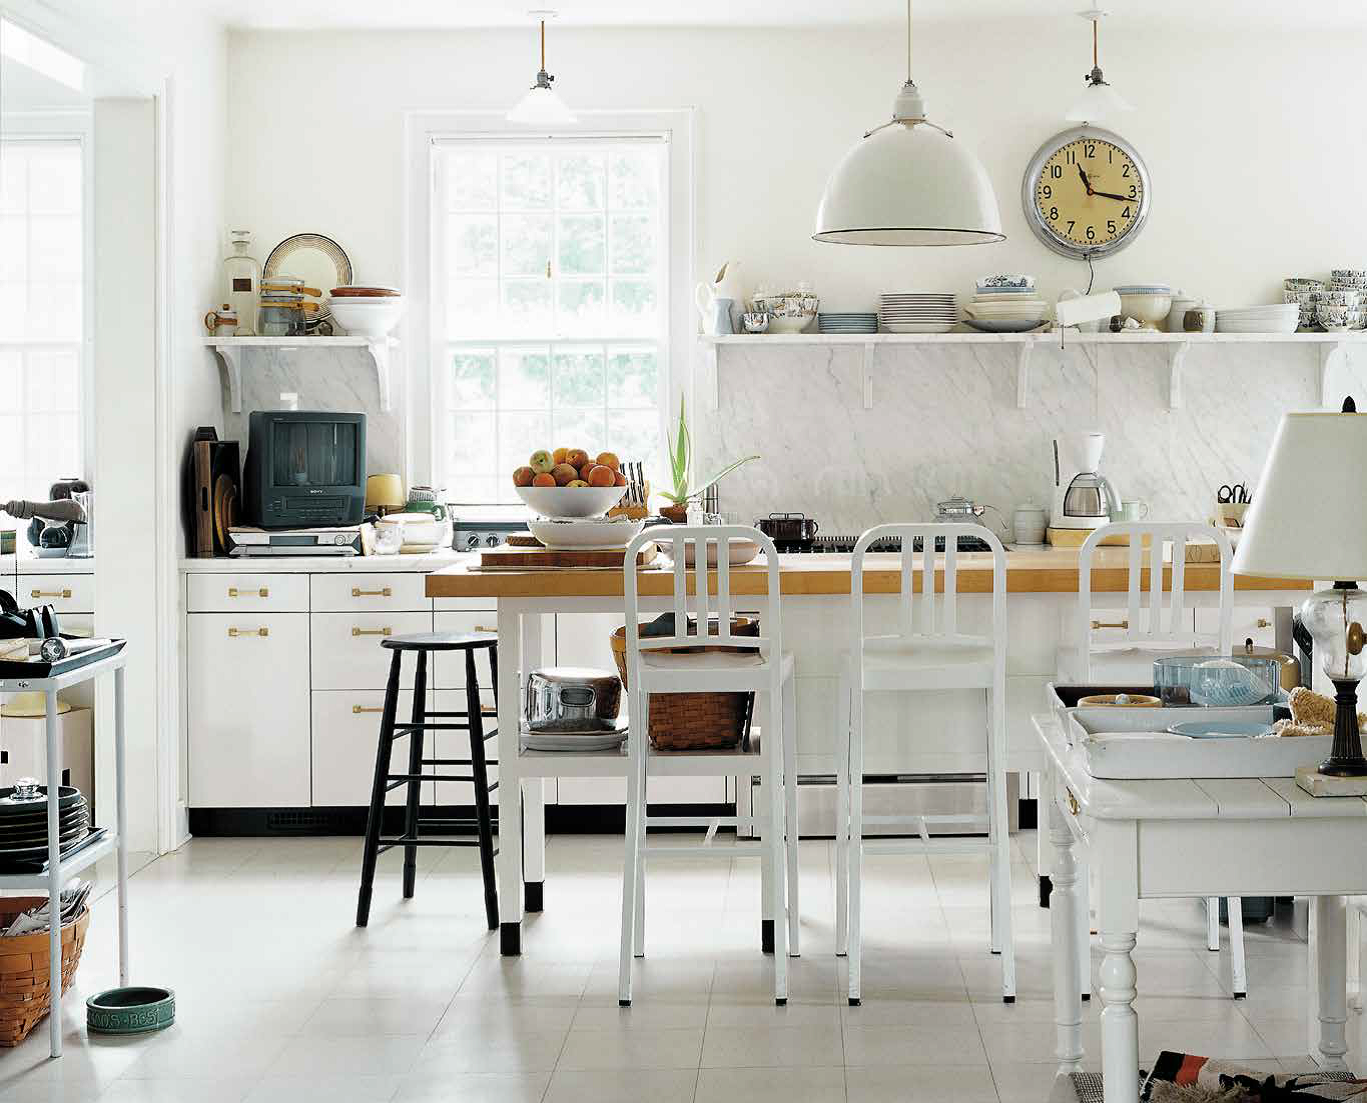 While this kitchen might appear to be a random cornucopia at a glance, certain elements suggest a distinct narrative character: the Emeco stools, the laboratory pendant light, the schoolroom clock, and, not least, the chunky vintage TV. I see a cafeteria in a scientific research facility, circa 1980. Not everyone would, but that invitation to interpret gives this kitchen character. Photo Credit: Laura Resen